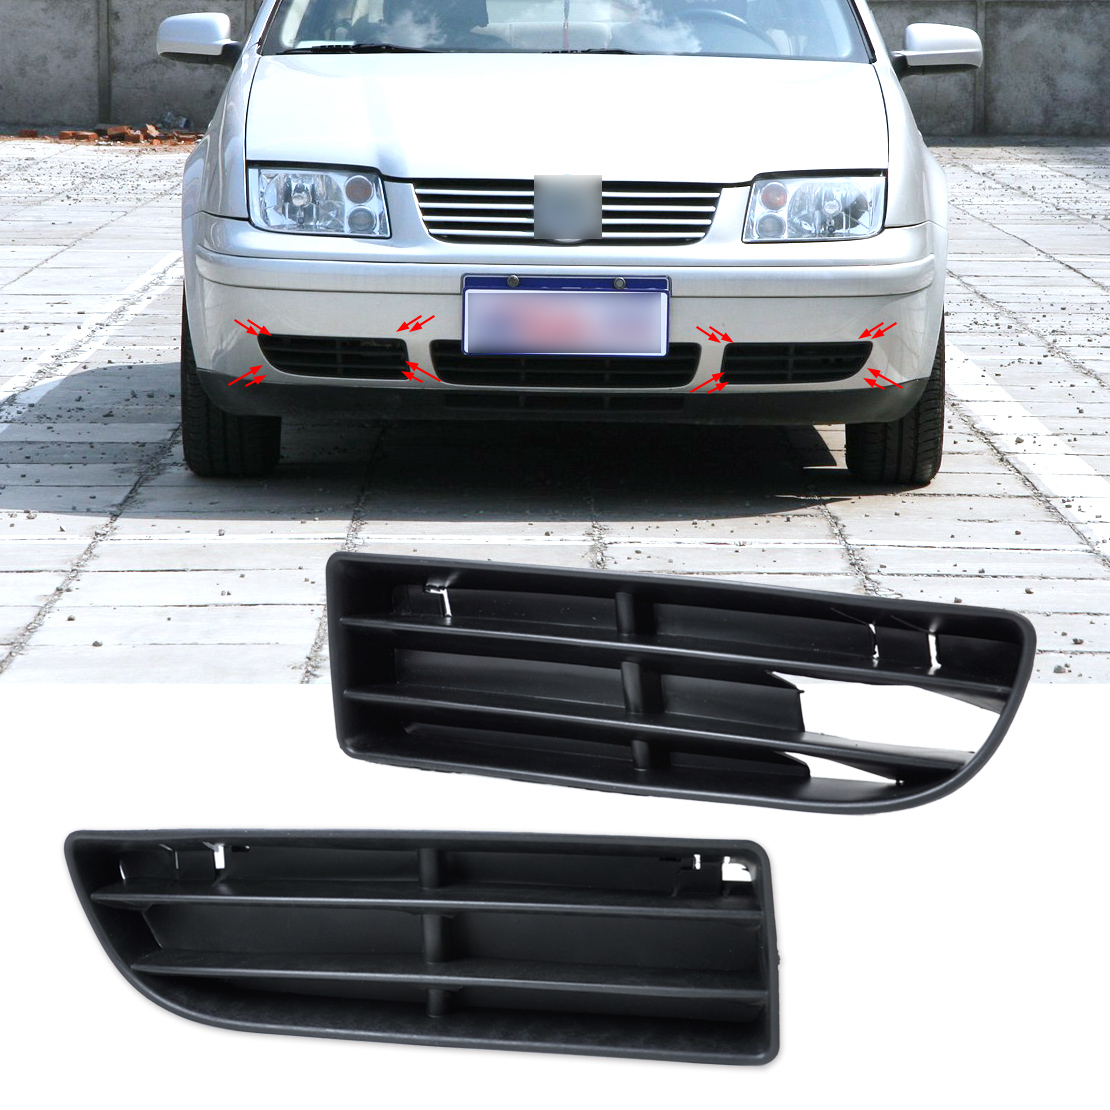 DWCX 1J5853665B, 1J5853666C Front Lower Grille Bumper Vent for Volkswagen VW Jetta Bora MK4 1999 2000 2001 2002 2003 2004 a collection of mosaic pieces knitting pattern book japanese knitting books chinese version